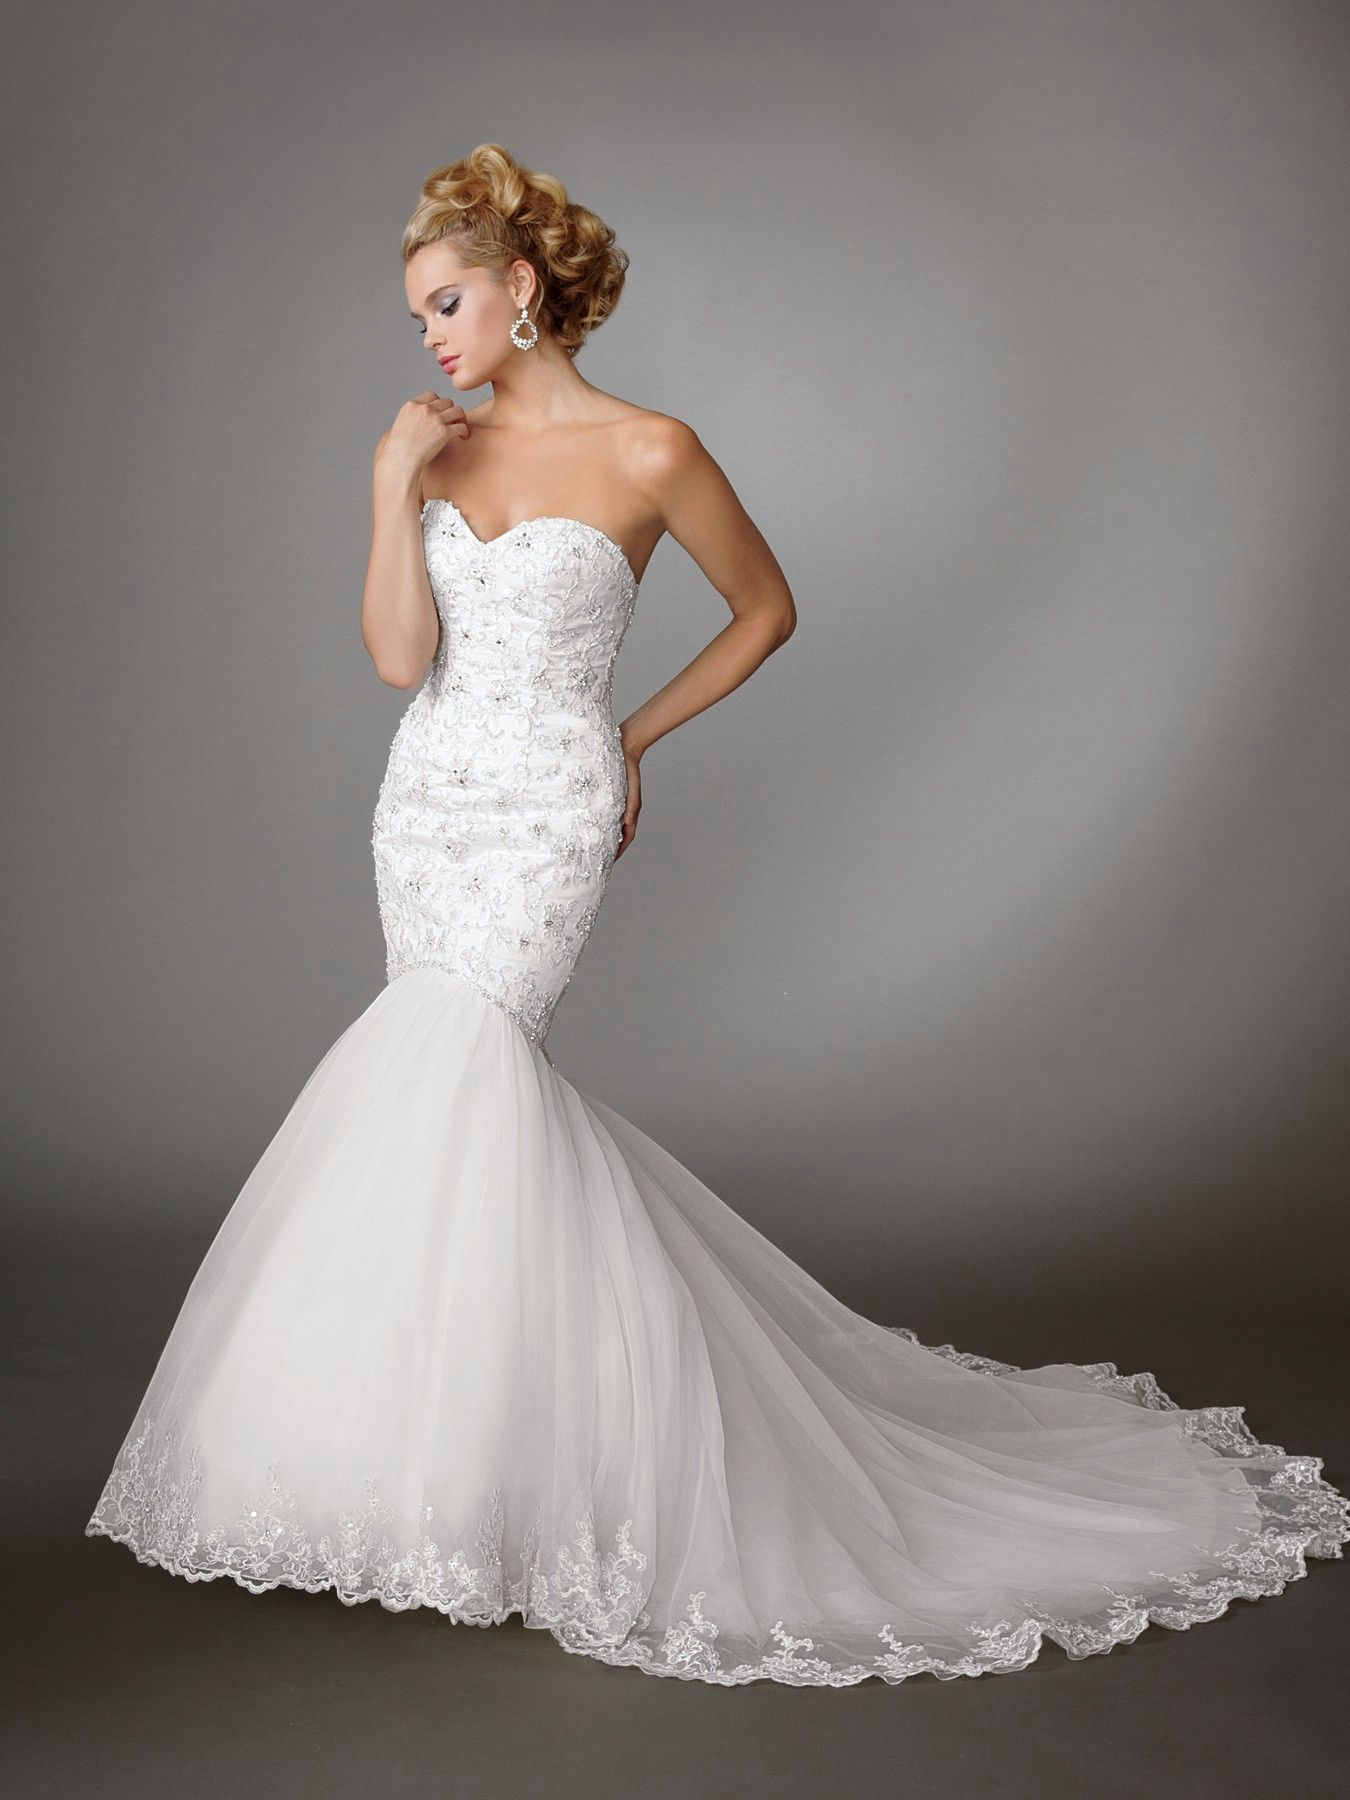 78  images about Wedding Gowns (Mermaid) on Pinterest - Lace ...